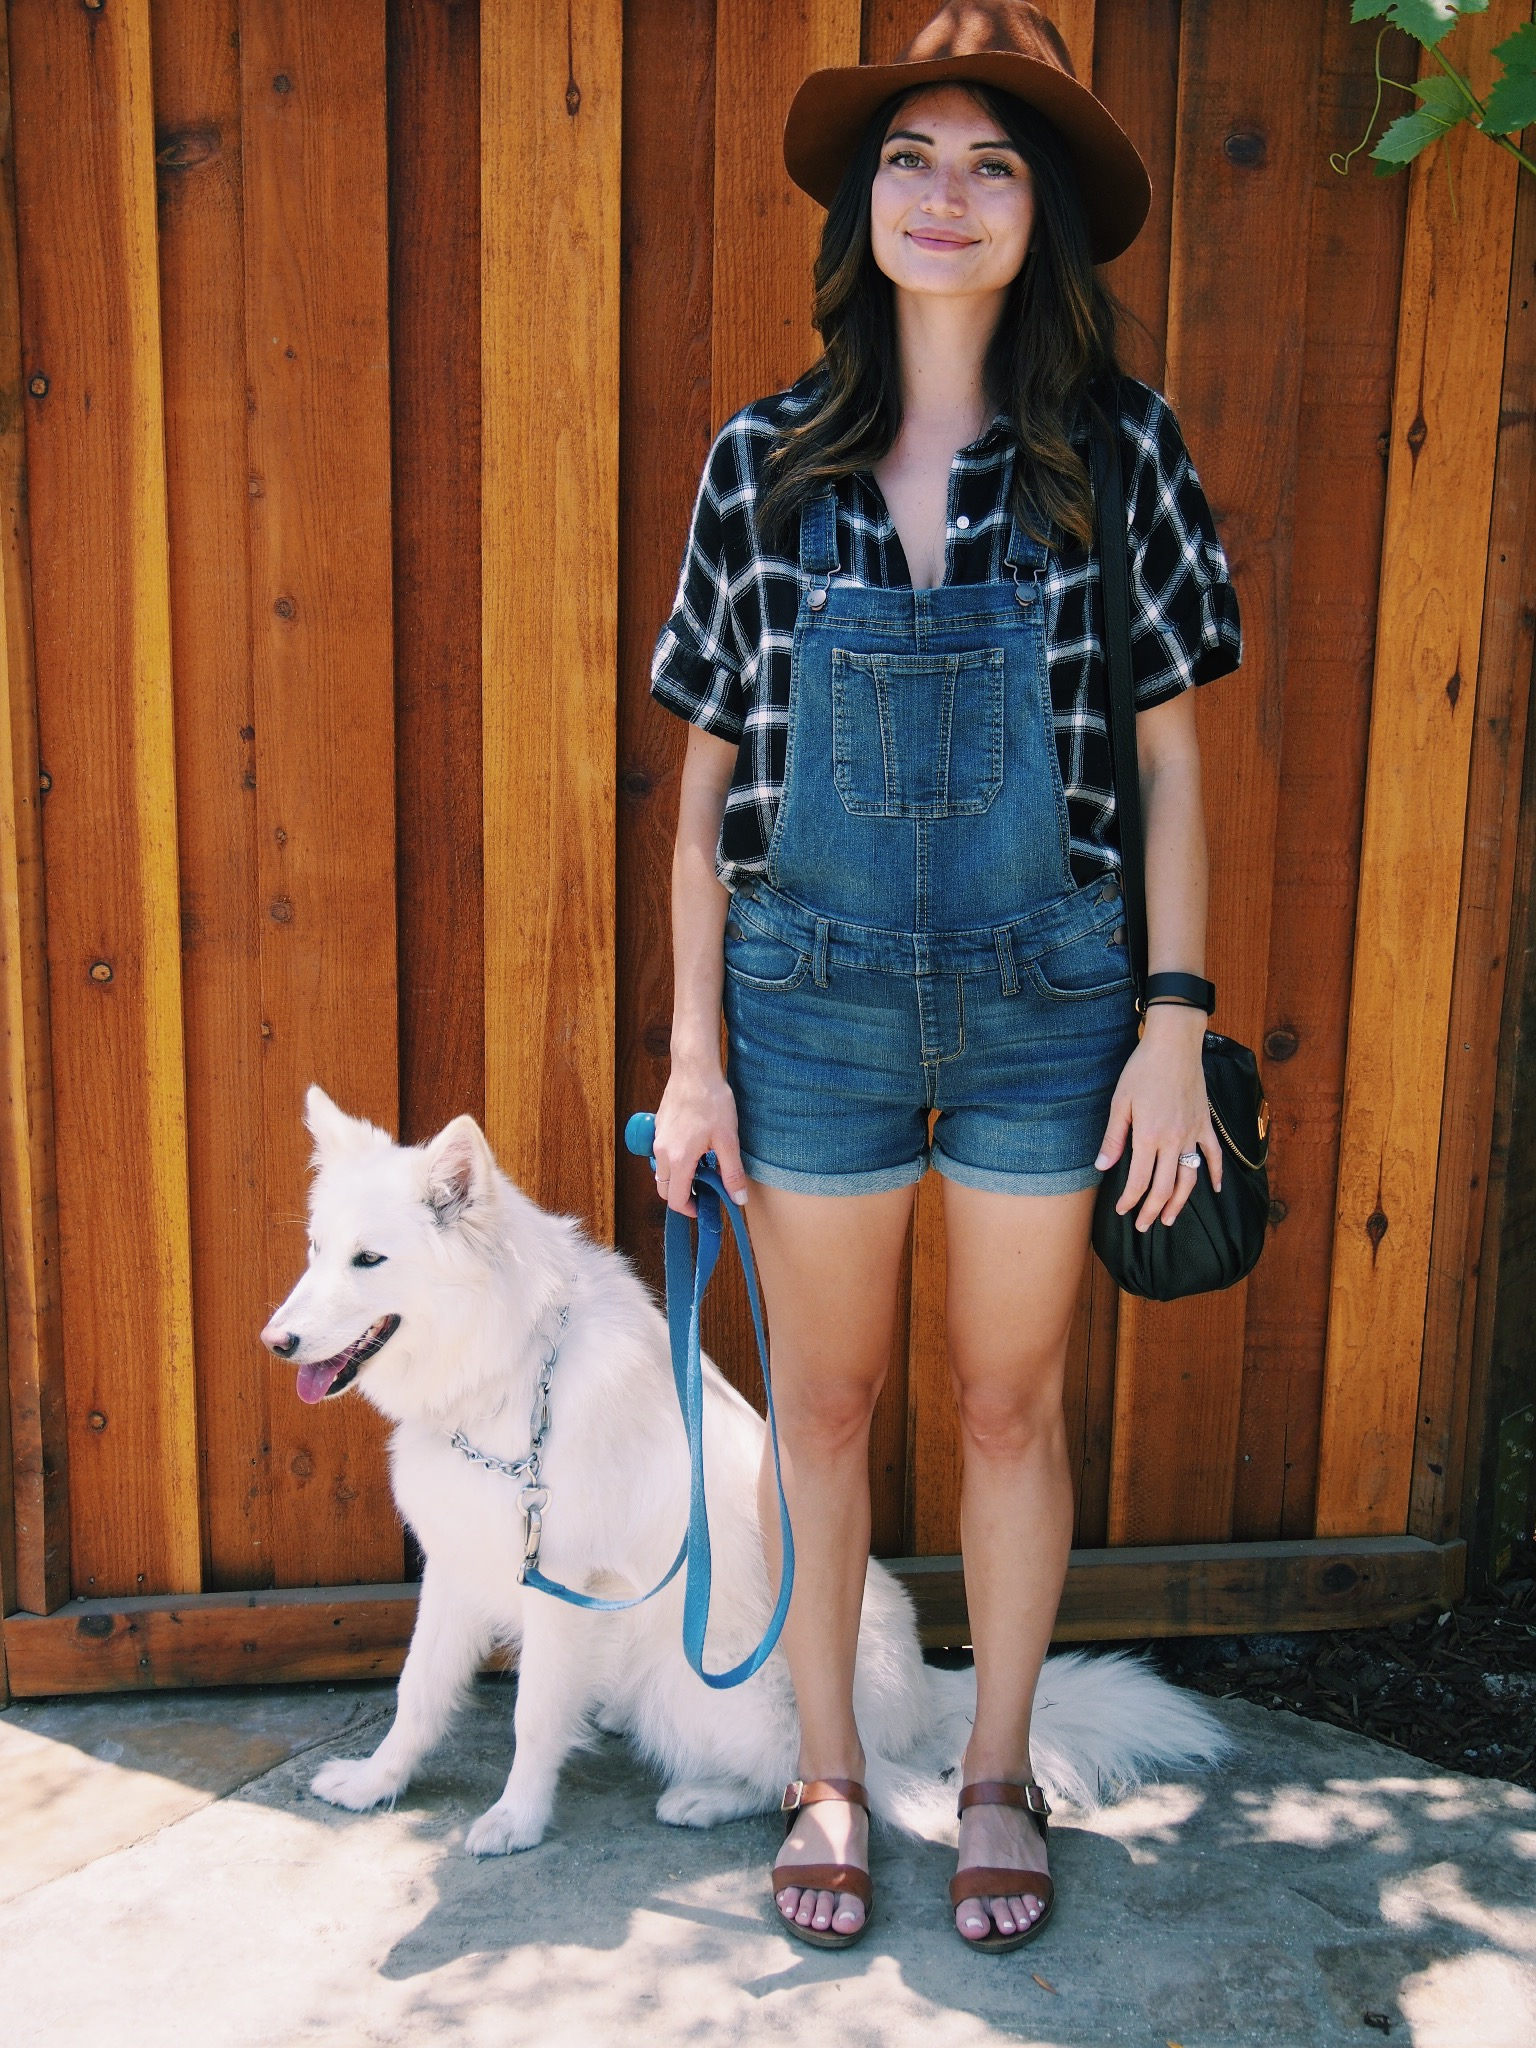 Hat: Urban Outfitters. Shirt: Old Navy. Overalls: similar  here   and  here.  Sandals: Steve Madden.